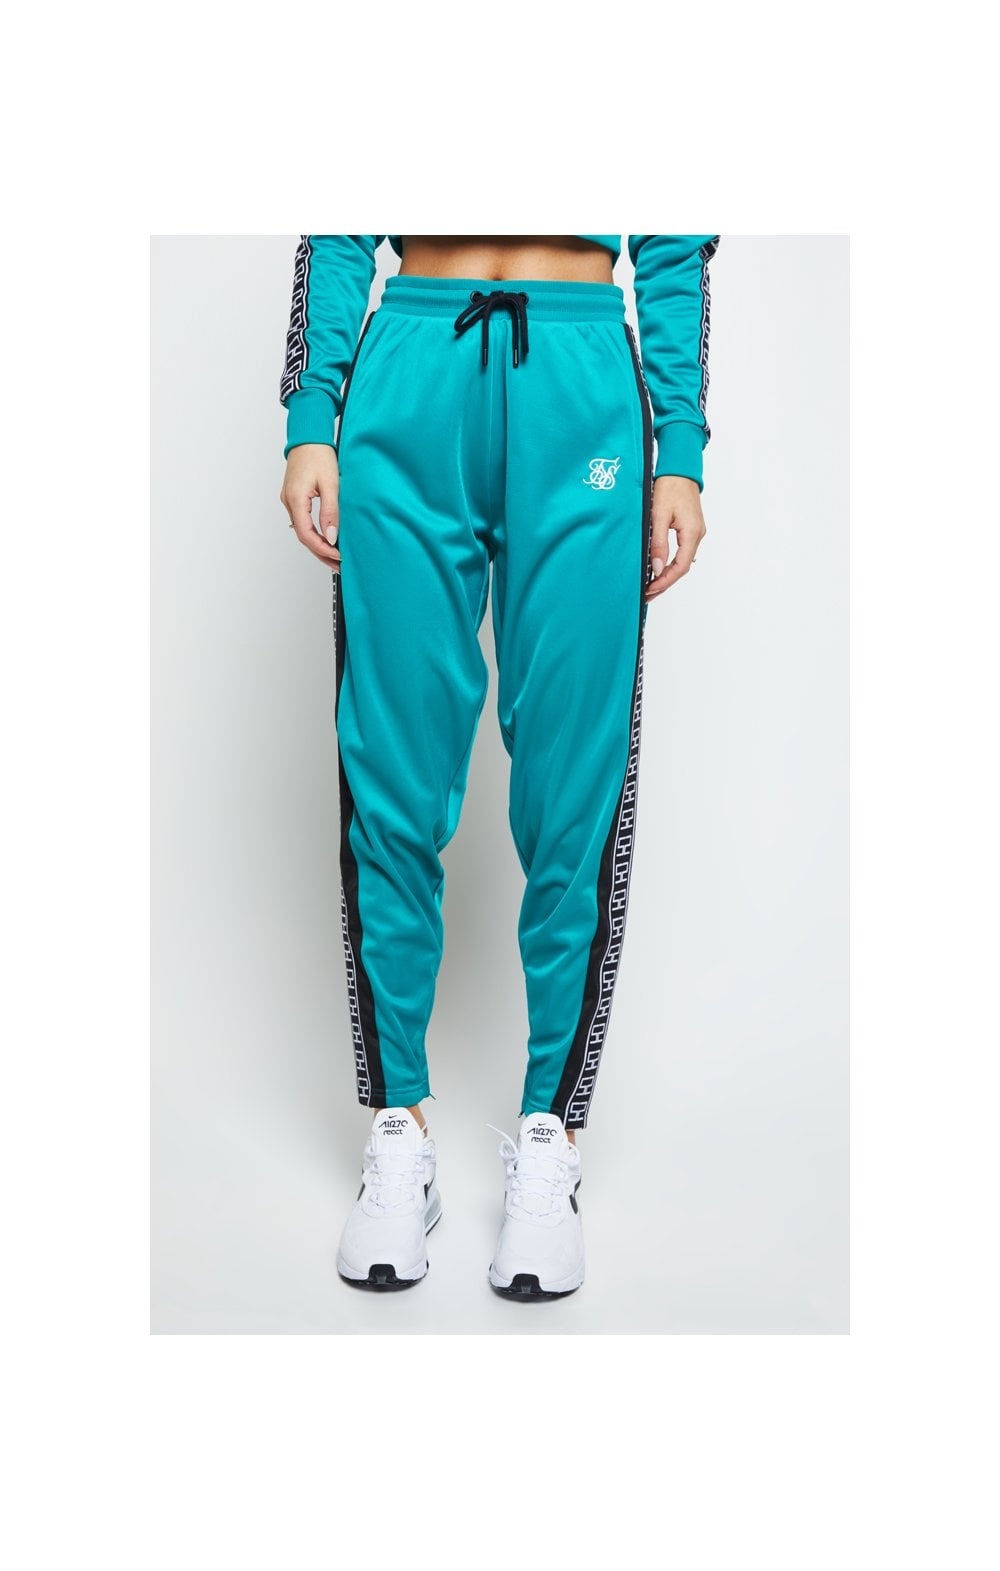 Load image into Gallery viewer, SikSilk Azure Track Pants - Teal